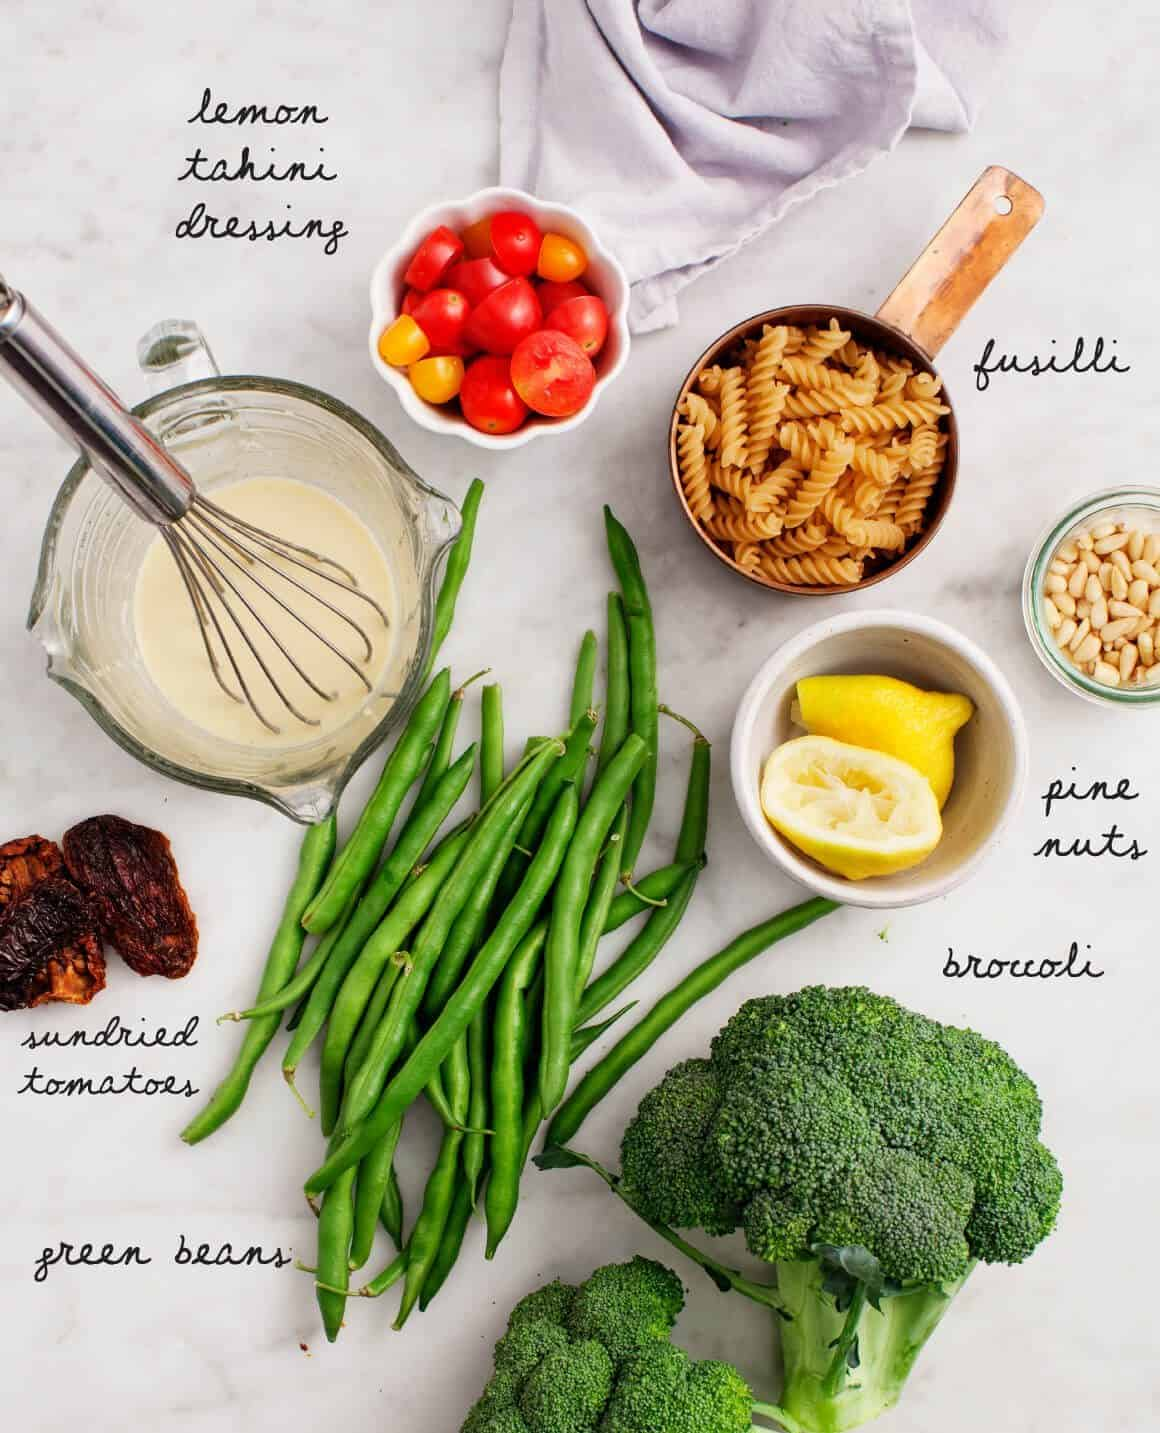 Broccoli Pasta Salad Recipe ingredients